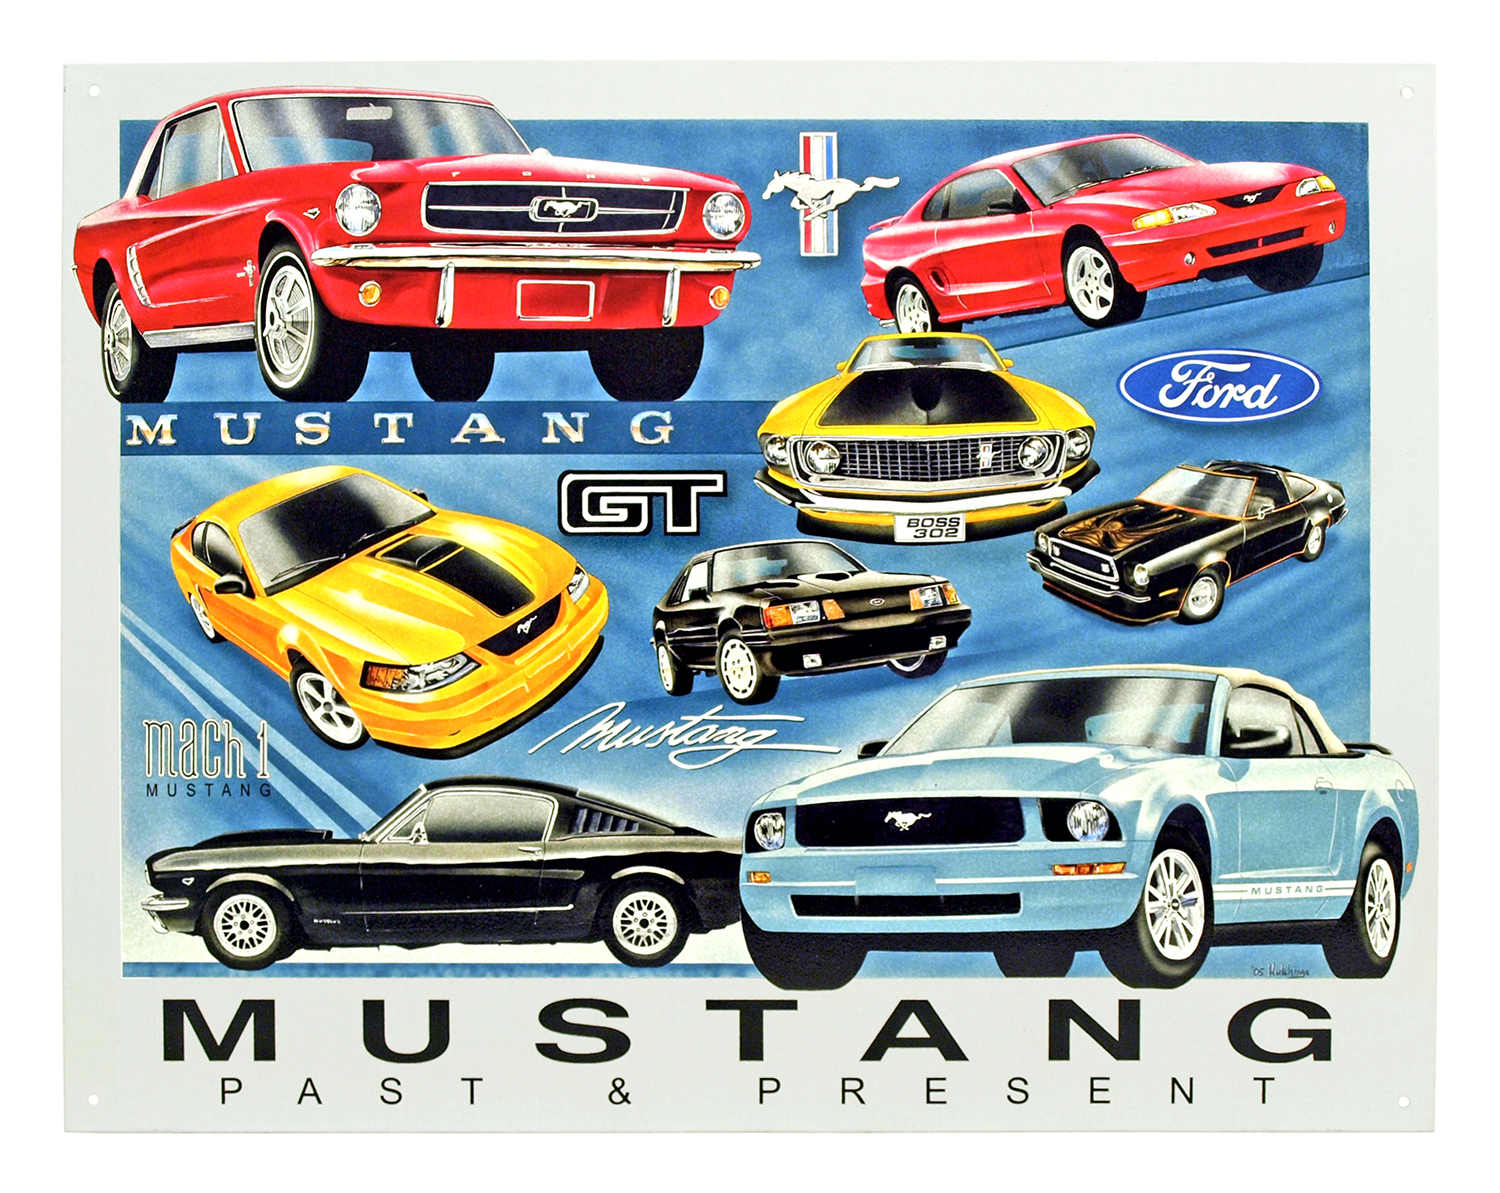 Ford Mustang Past and Present Metal Sign